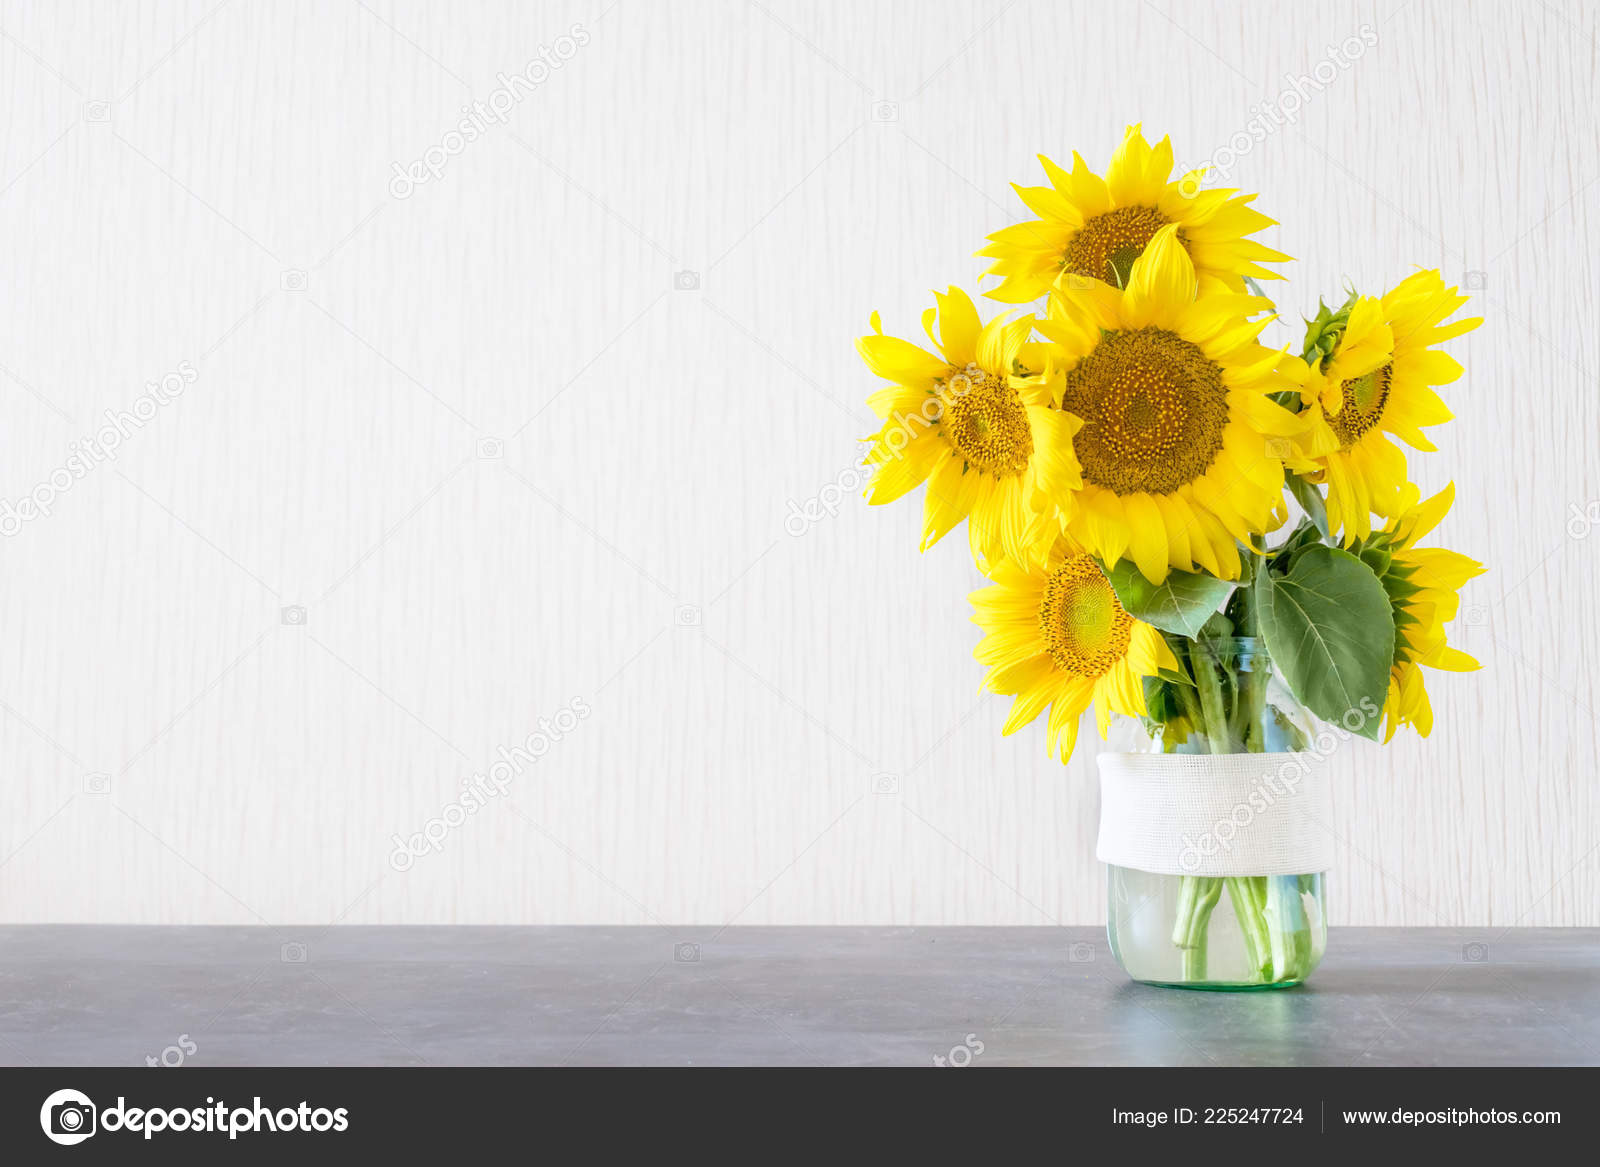 Bright Yellow Big Sunflowers Glass Vase Dark Table Light Texture Stock Photo C Irrmago 225247724